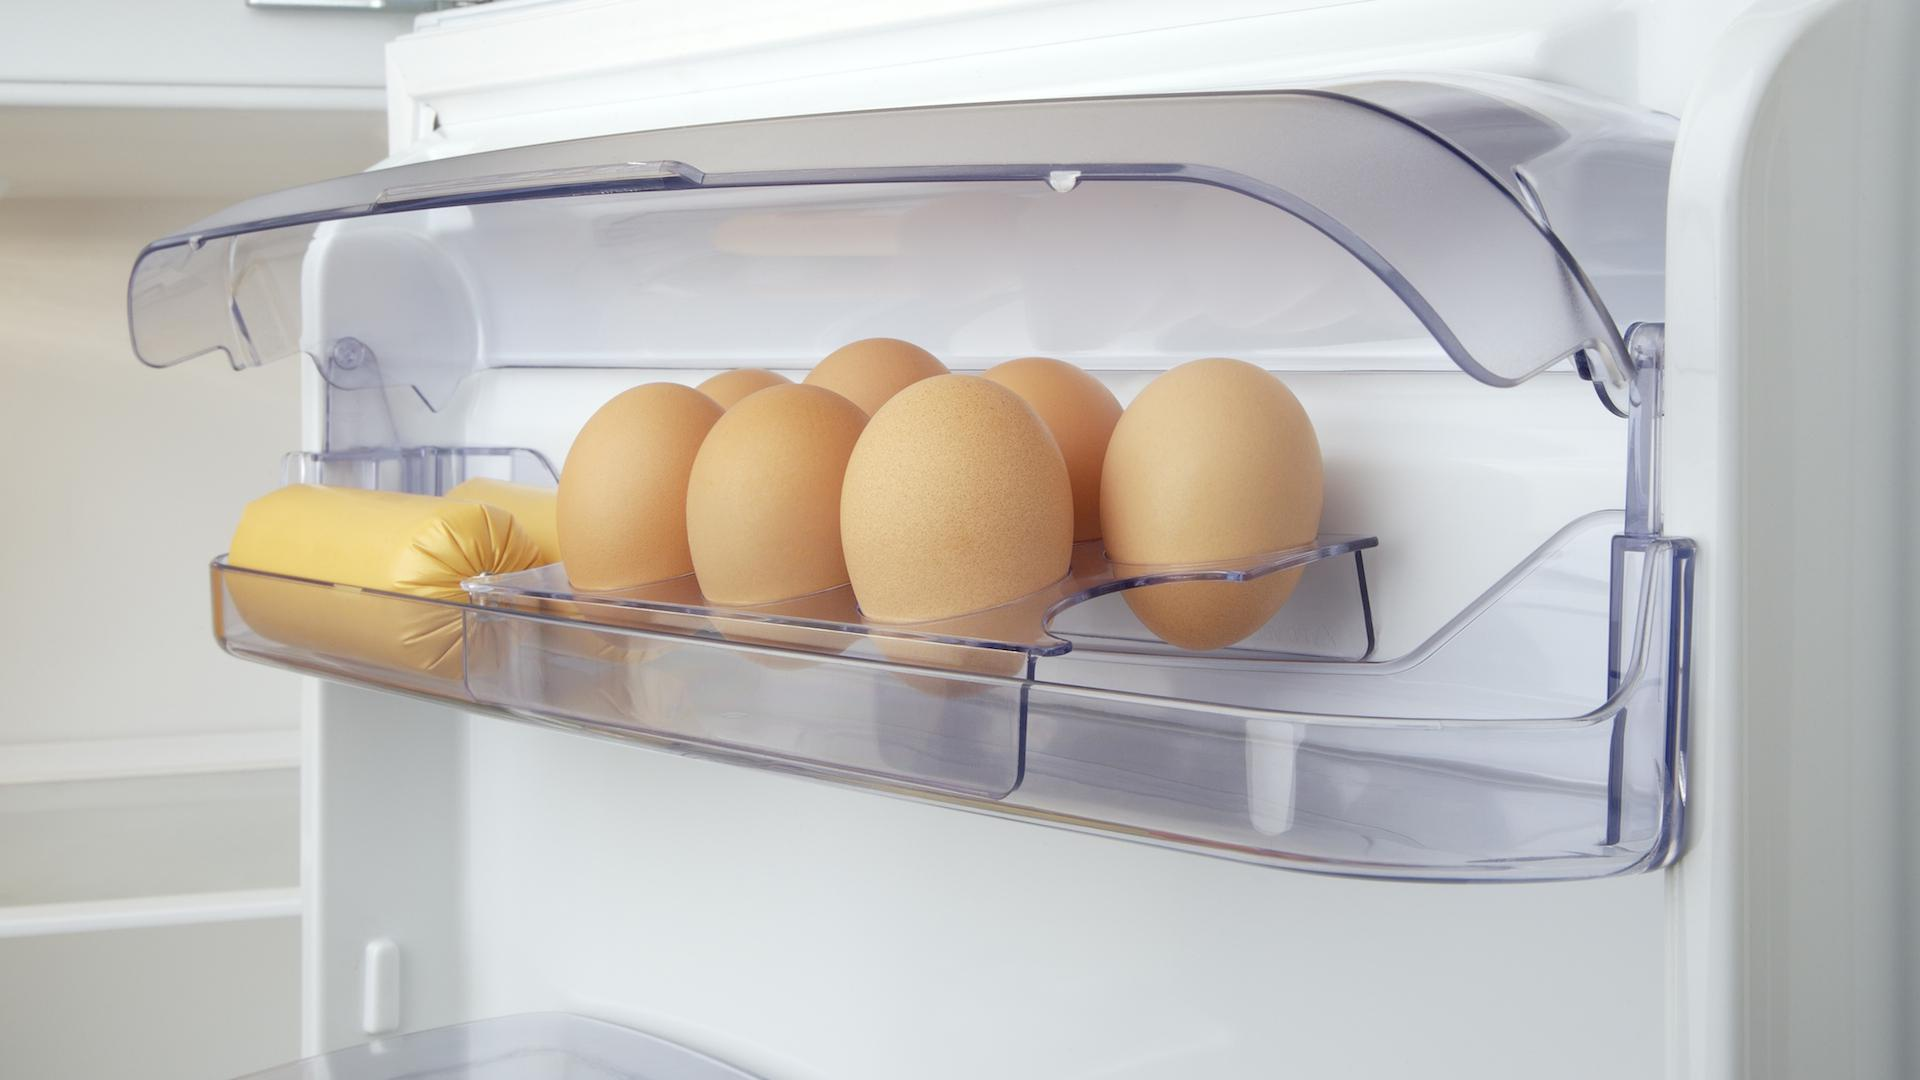 How long do eggs stay good in the refrigerator?